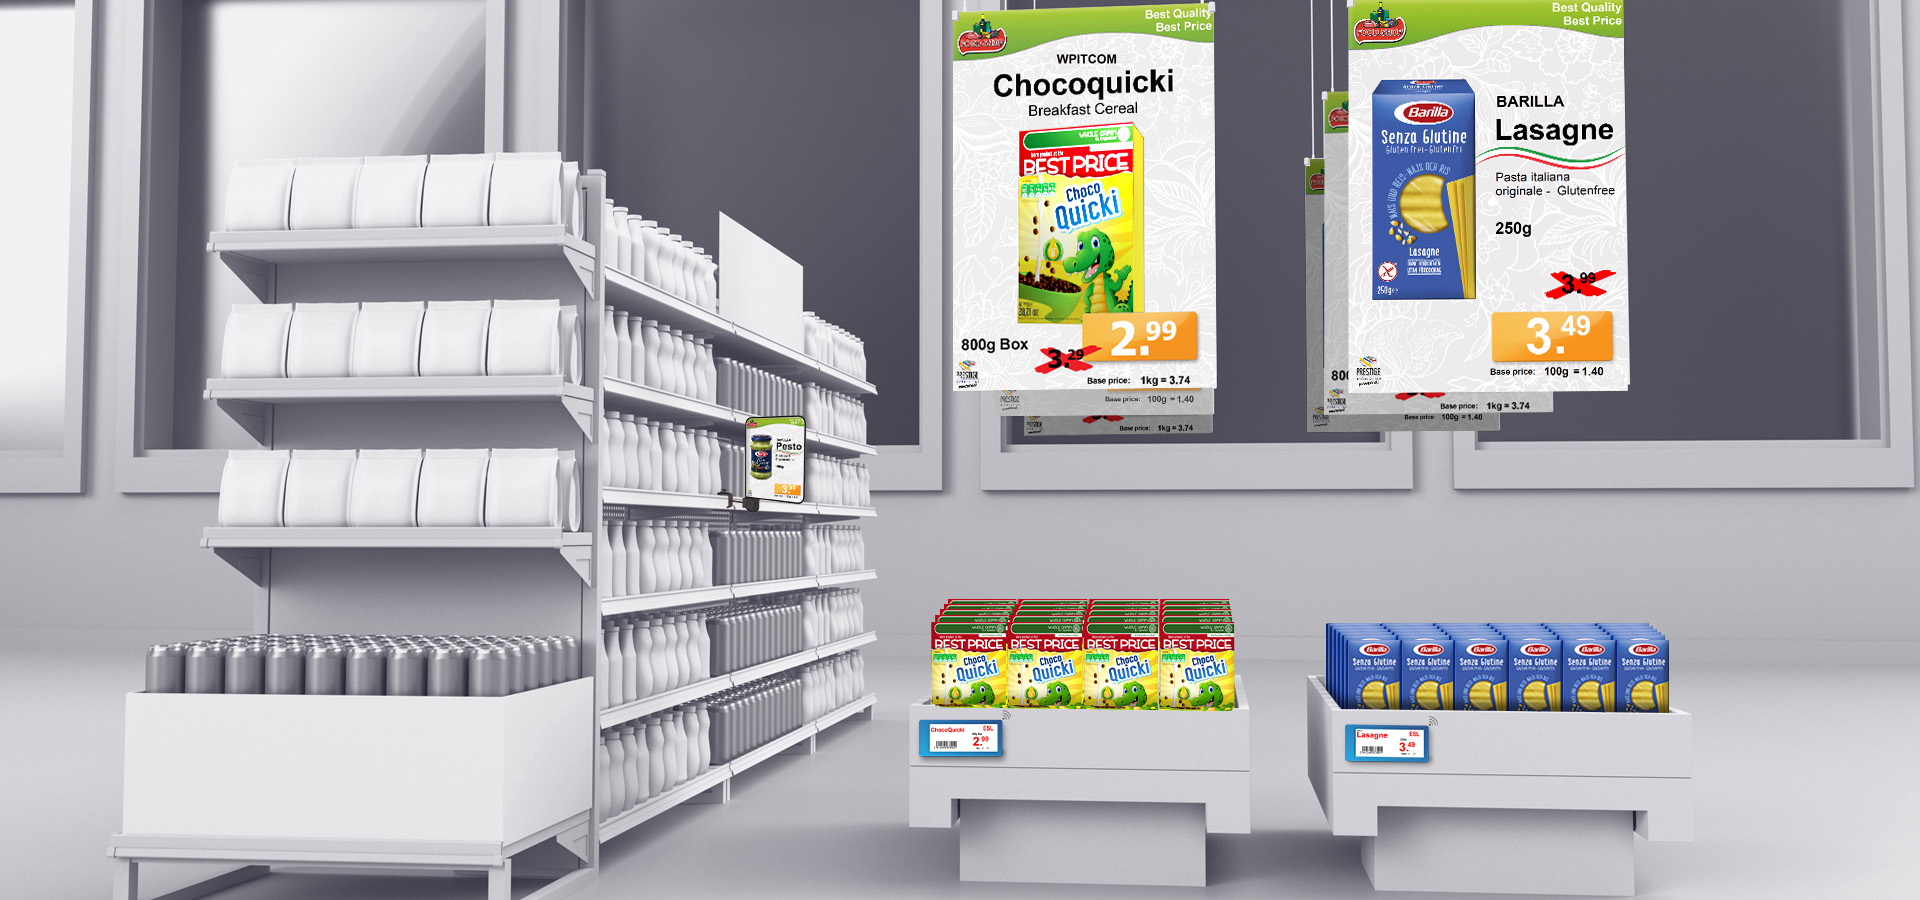 WPITCOM Display Box 2 in Food Retail Printing